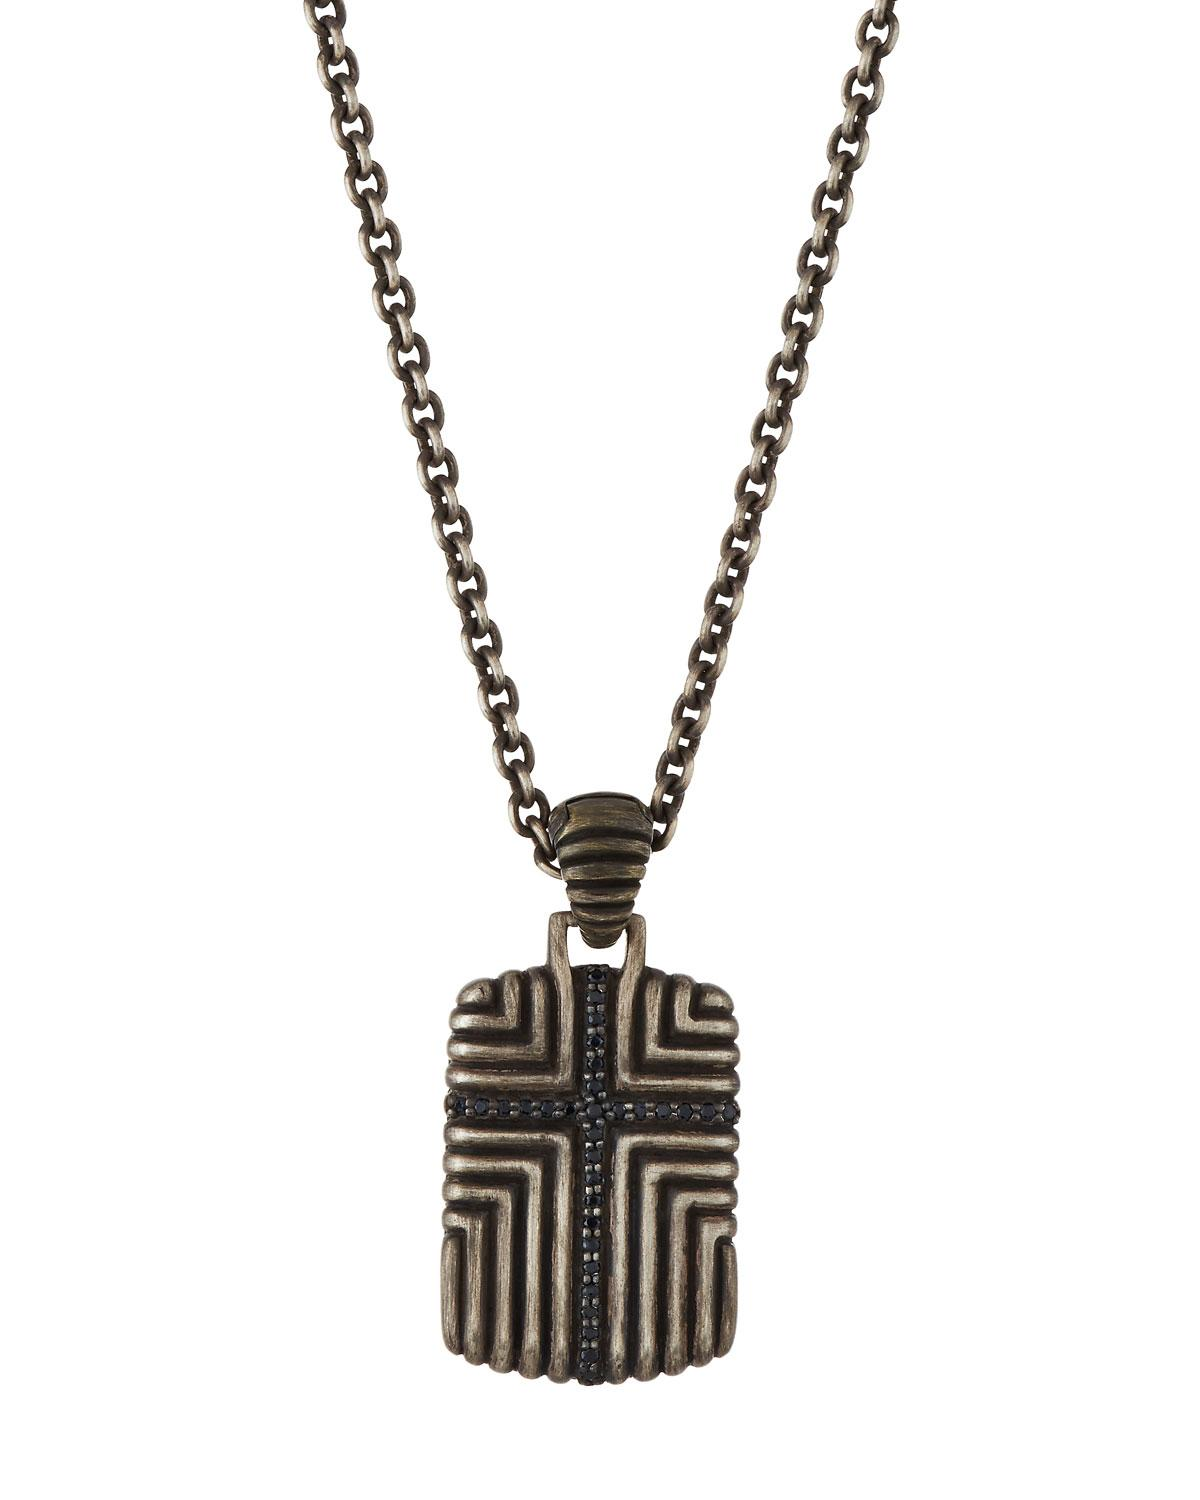 John hardy Men s Bedeg Black Sapphire Cross Dog Tag Necklace in Black for